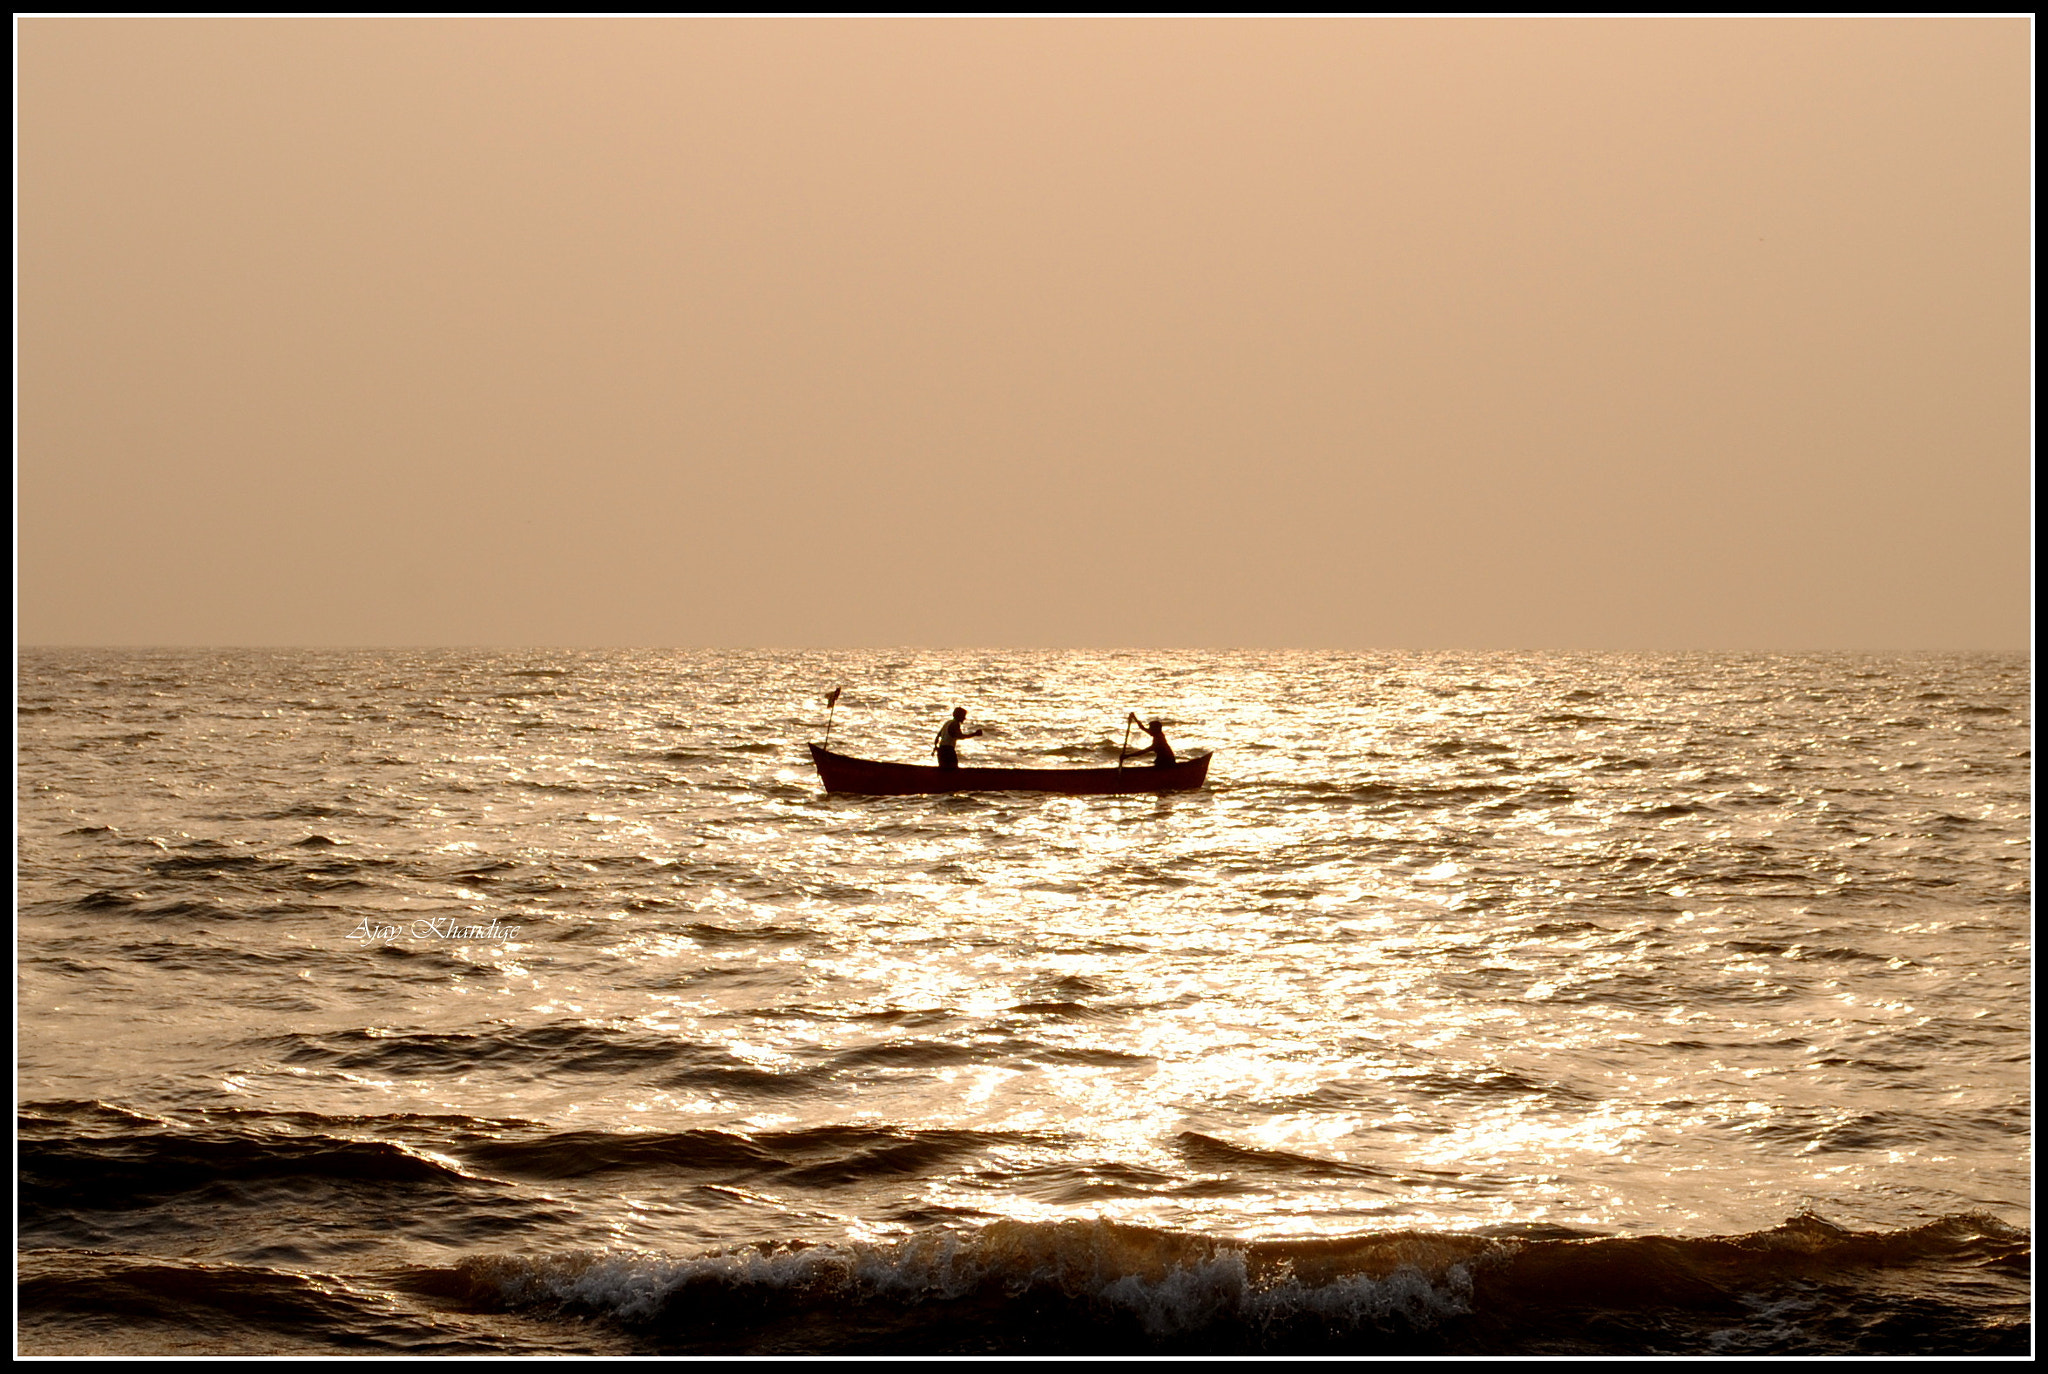 Photograph Fishing Time by Ajay Khandige on 500px